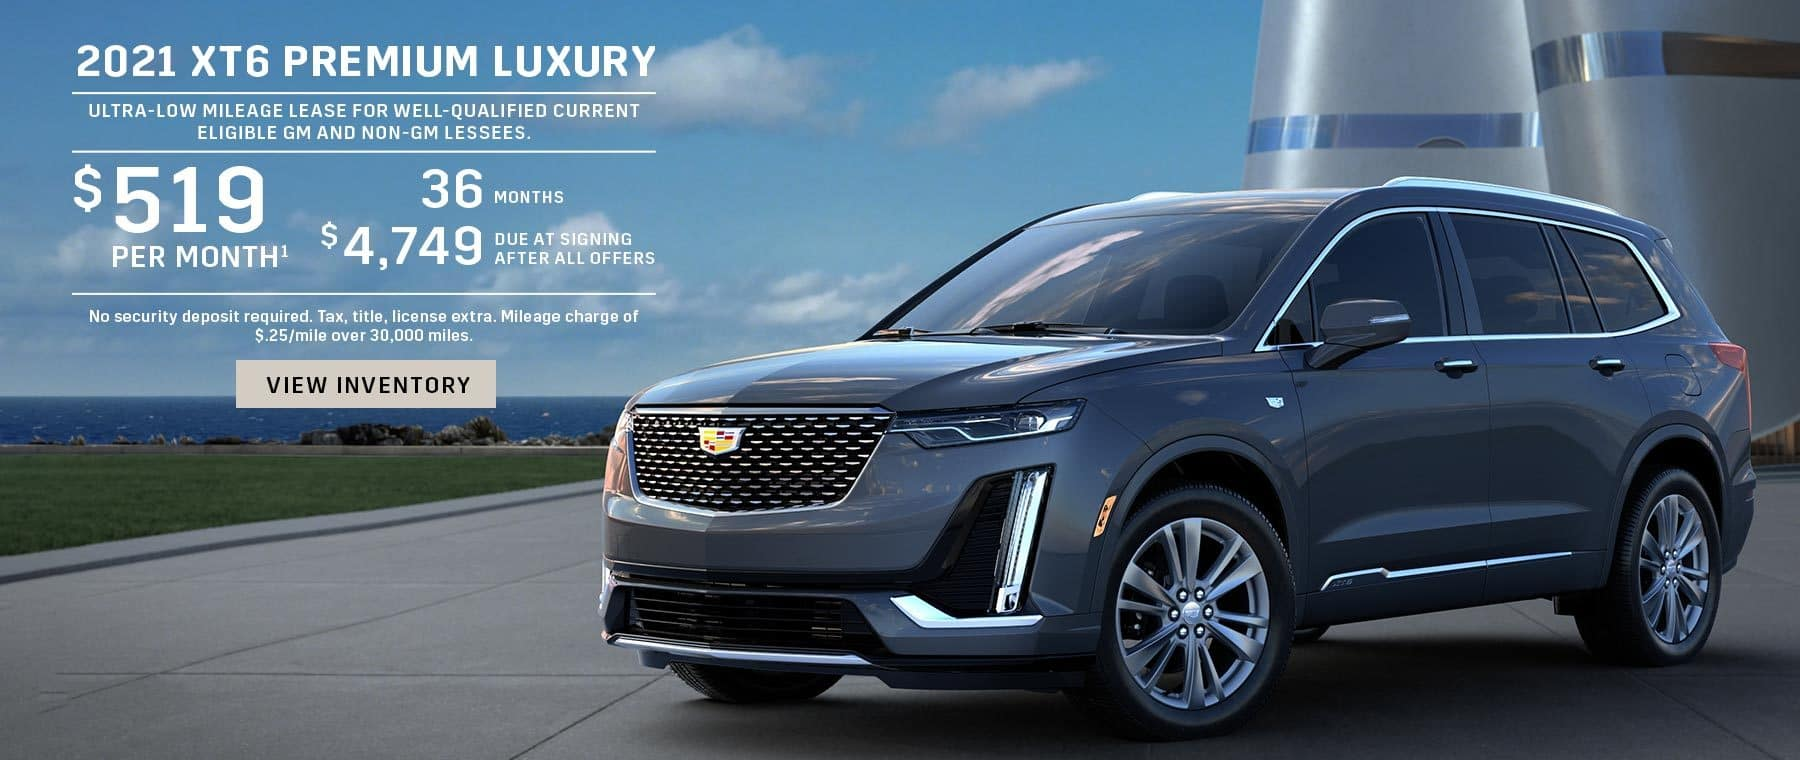 2021 XT6 Premium Luxury. Ultra-low mileage lease for well-qualified current eligible GM and non-GM lessees. $519 per month 36 months $4,749 due at signing after all offers. No security deposit required. Tax, title, license extra. Mileage charge of $.25/mile over 30,000 miles.